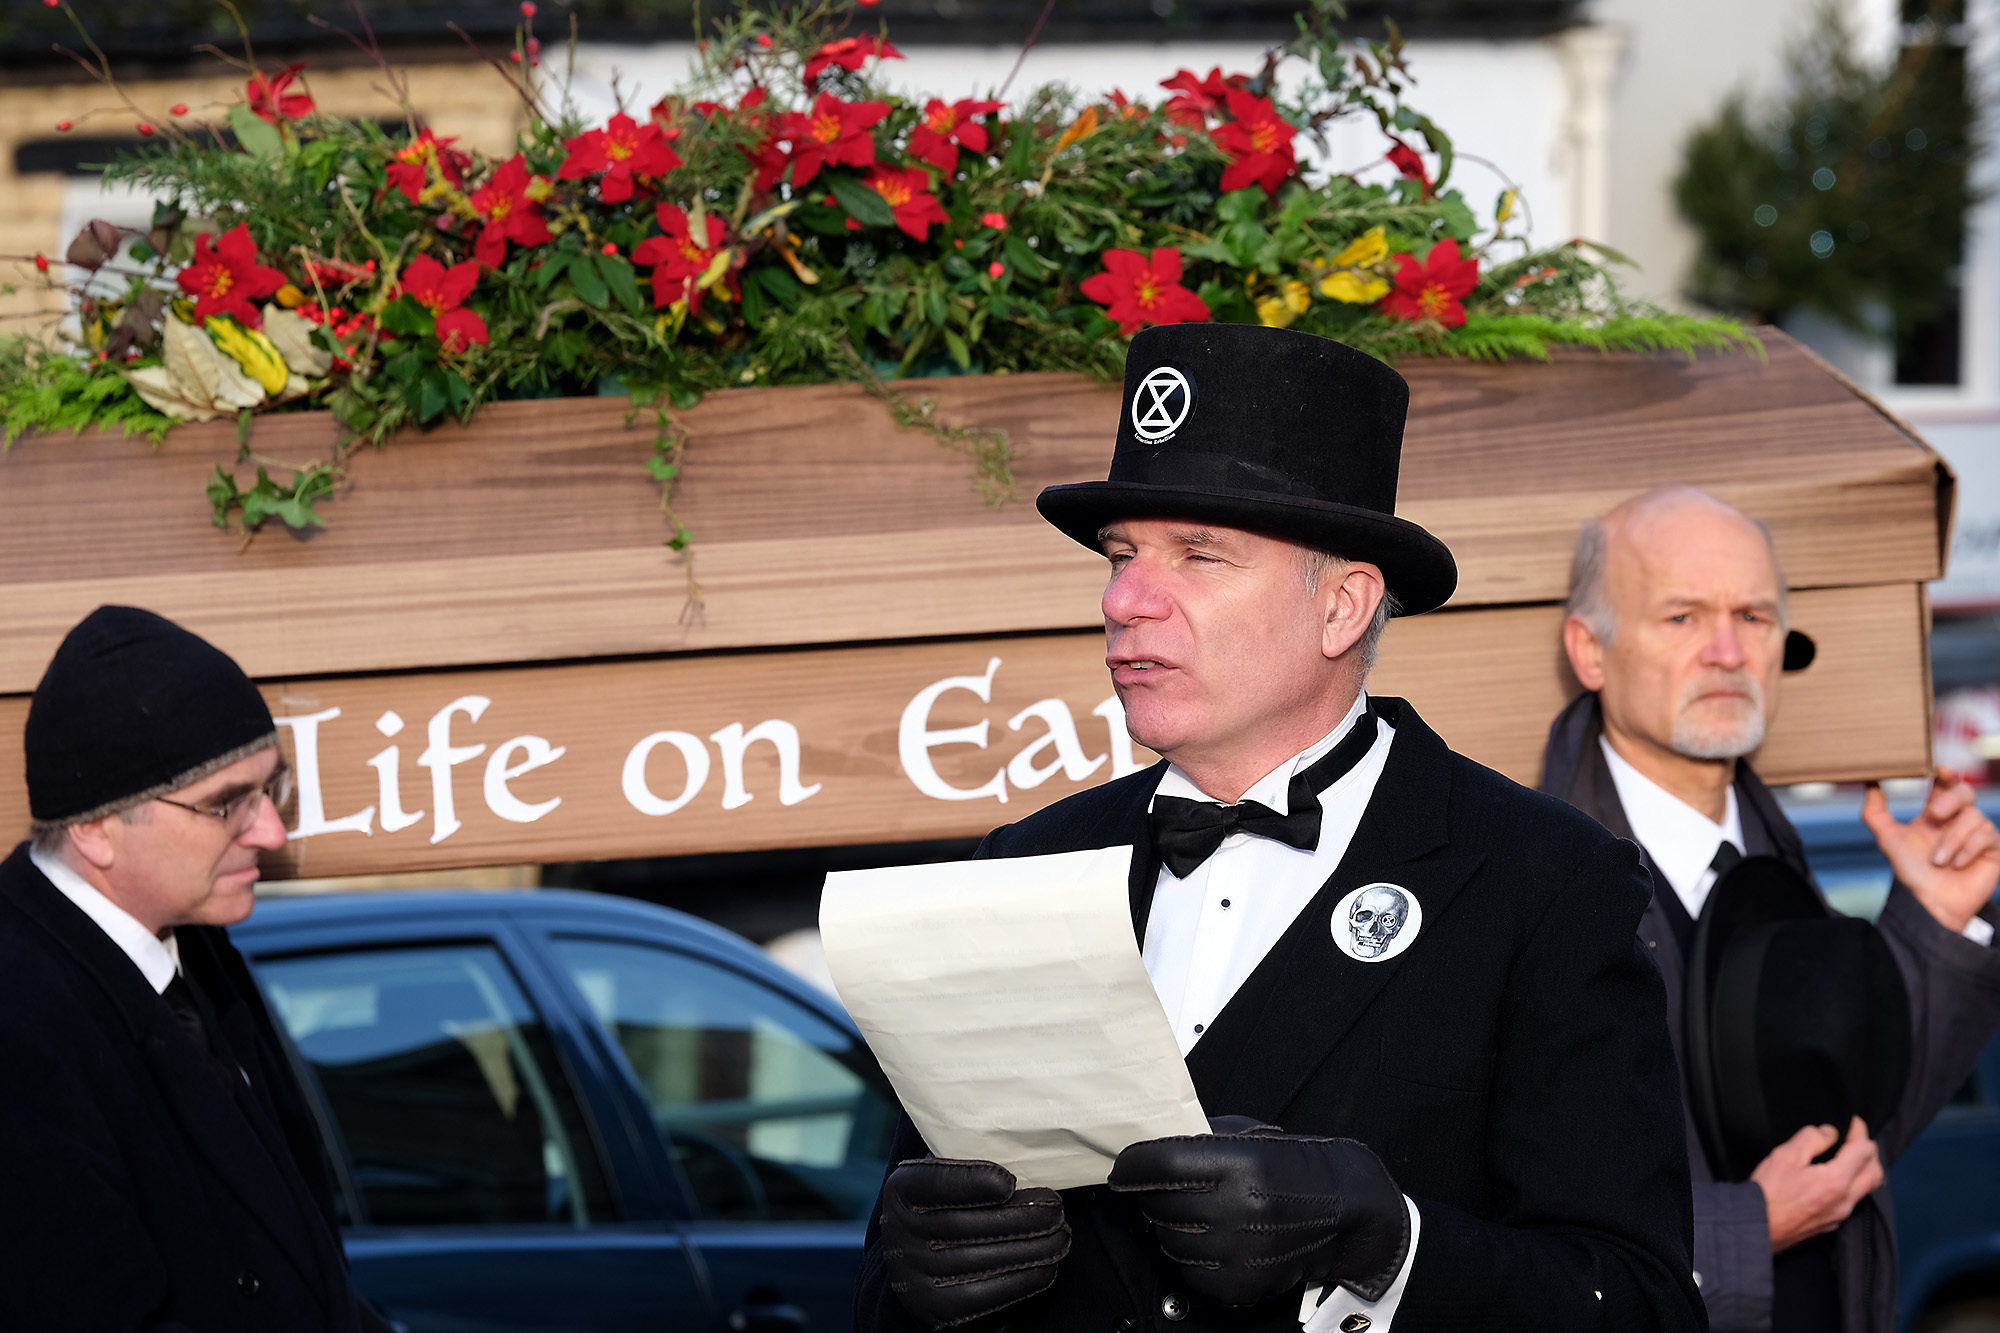 Extinction Rebellion held a funeral for Life on Earth